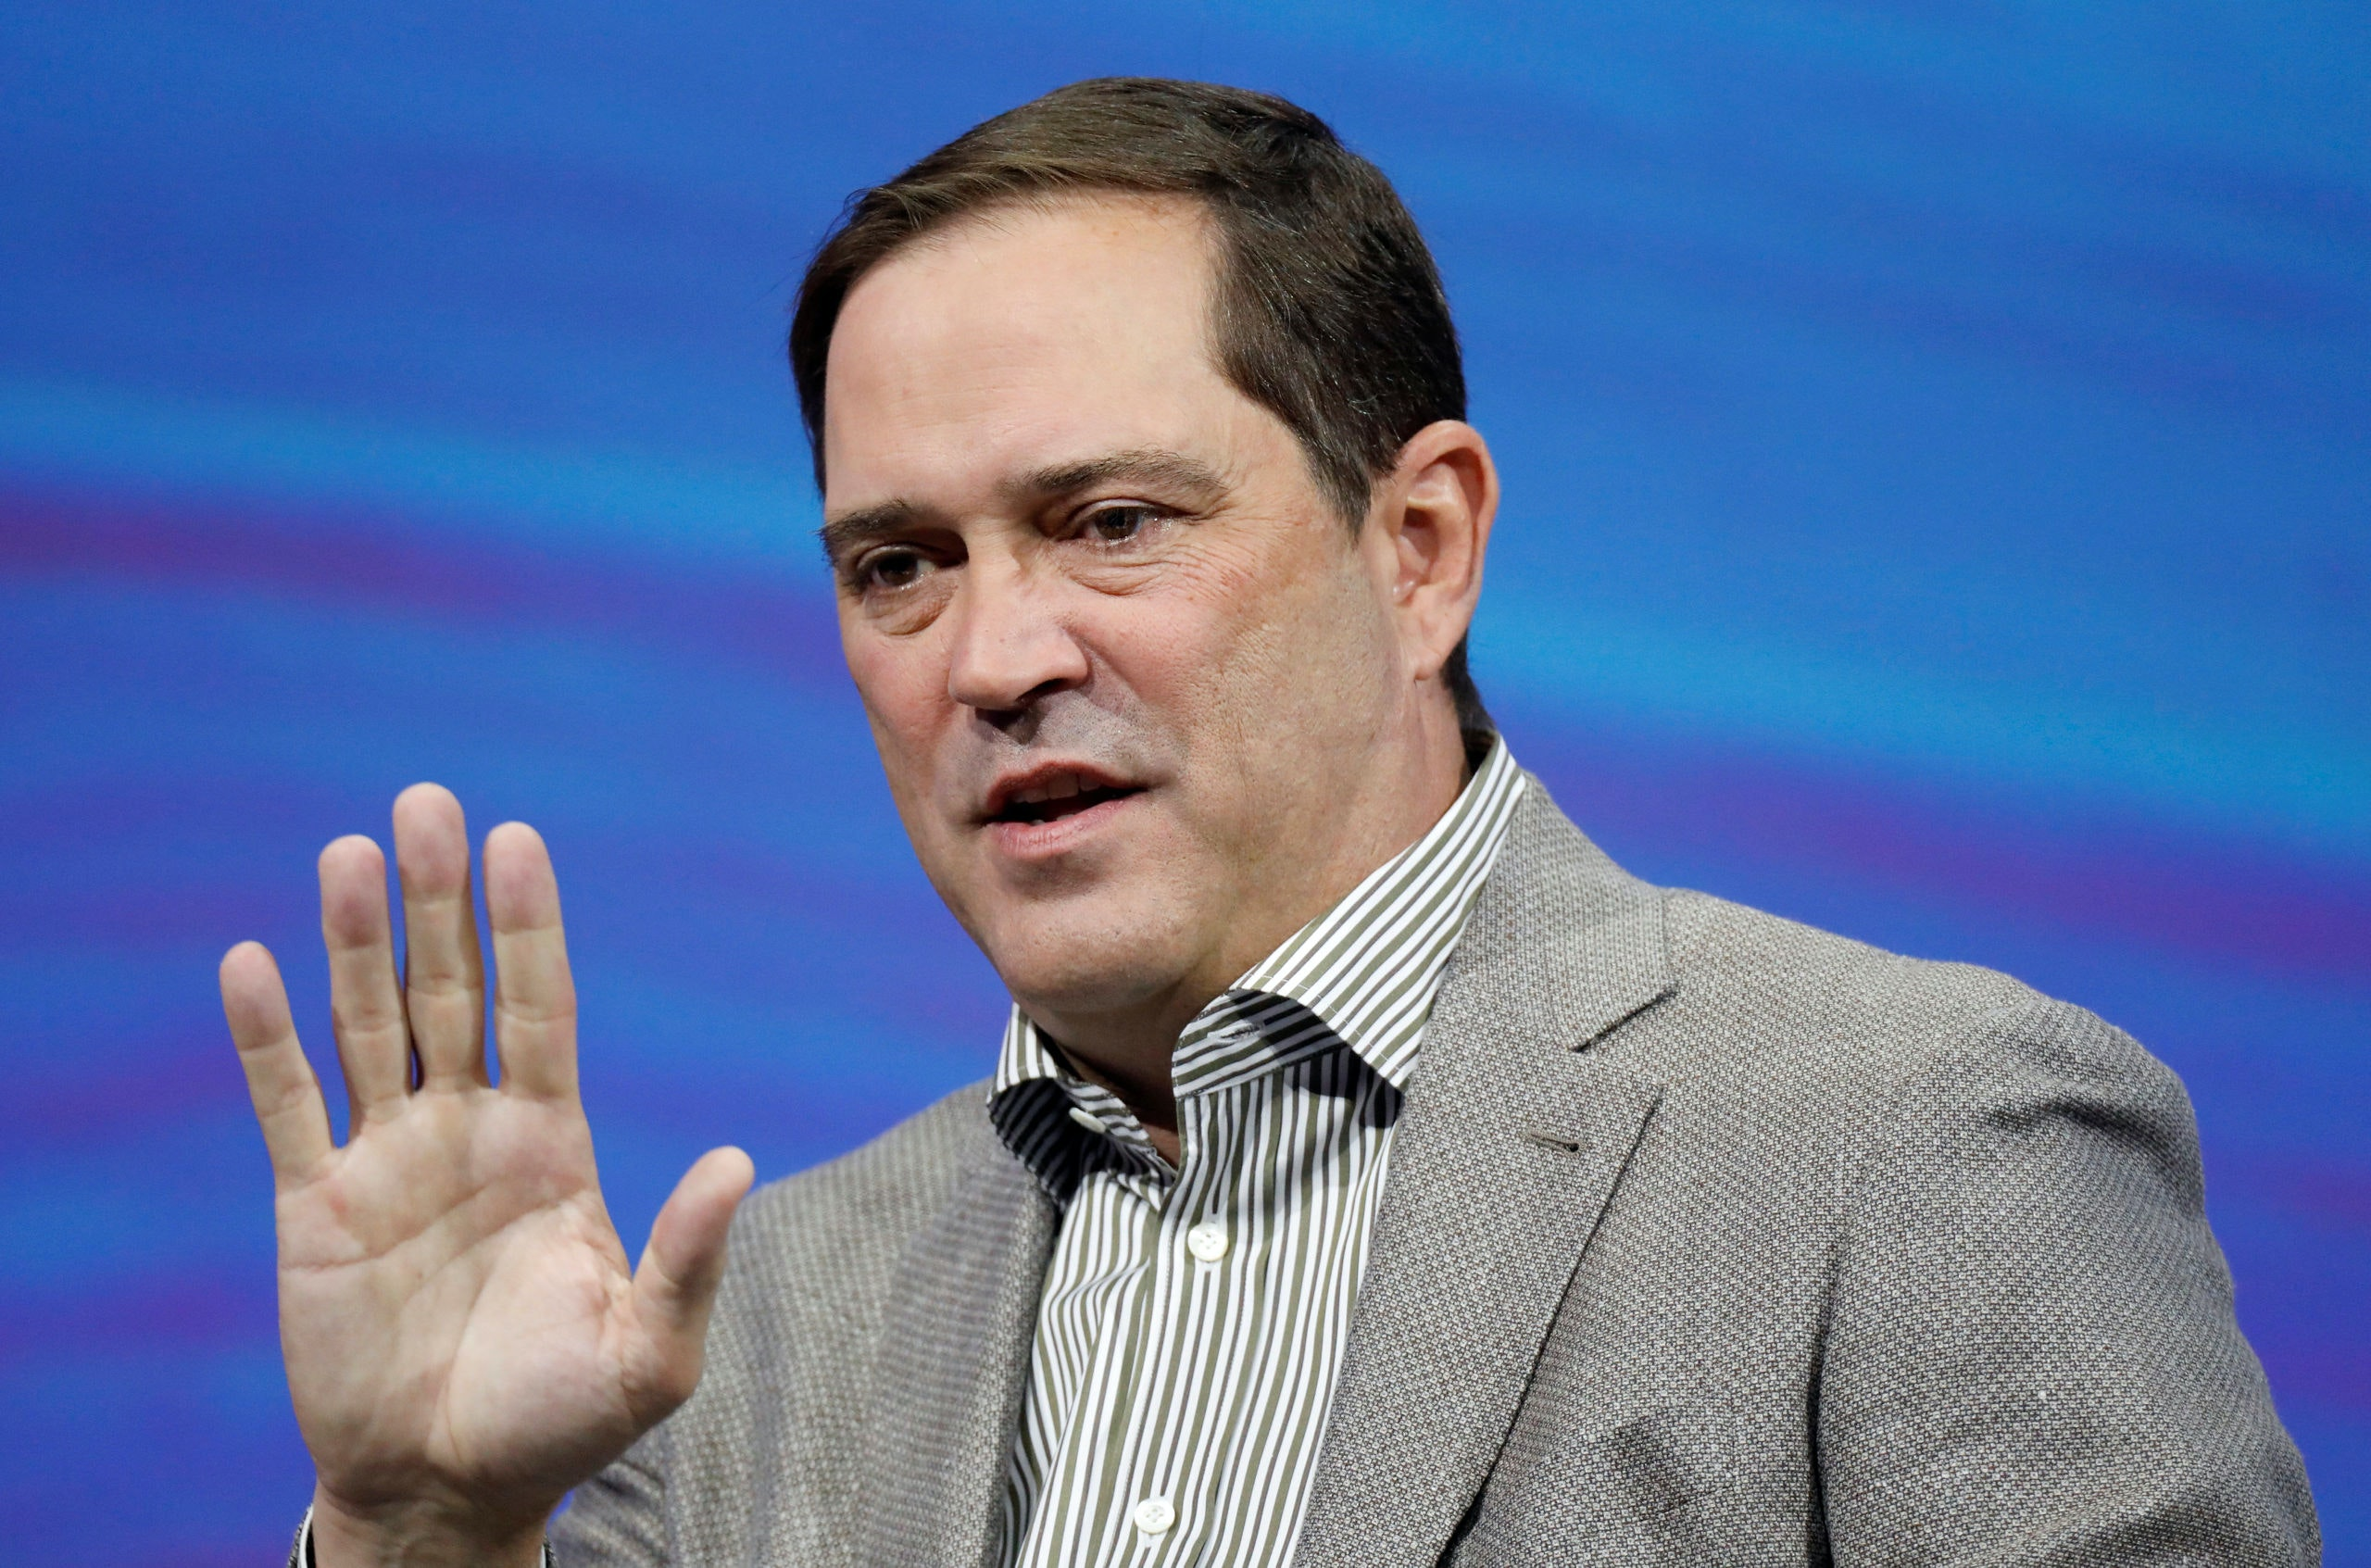 Chairman and CEO of Cisco Chuck Robbins attends the Viva Tech start-up and technology summit in Paris, France, May 24, 2018. REUTERS/Charles Platiau